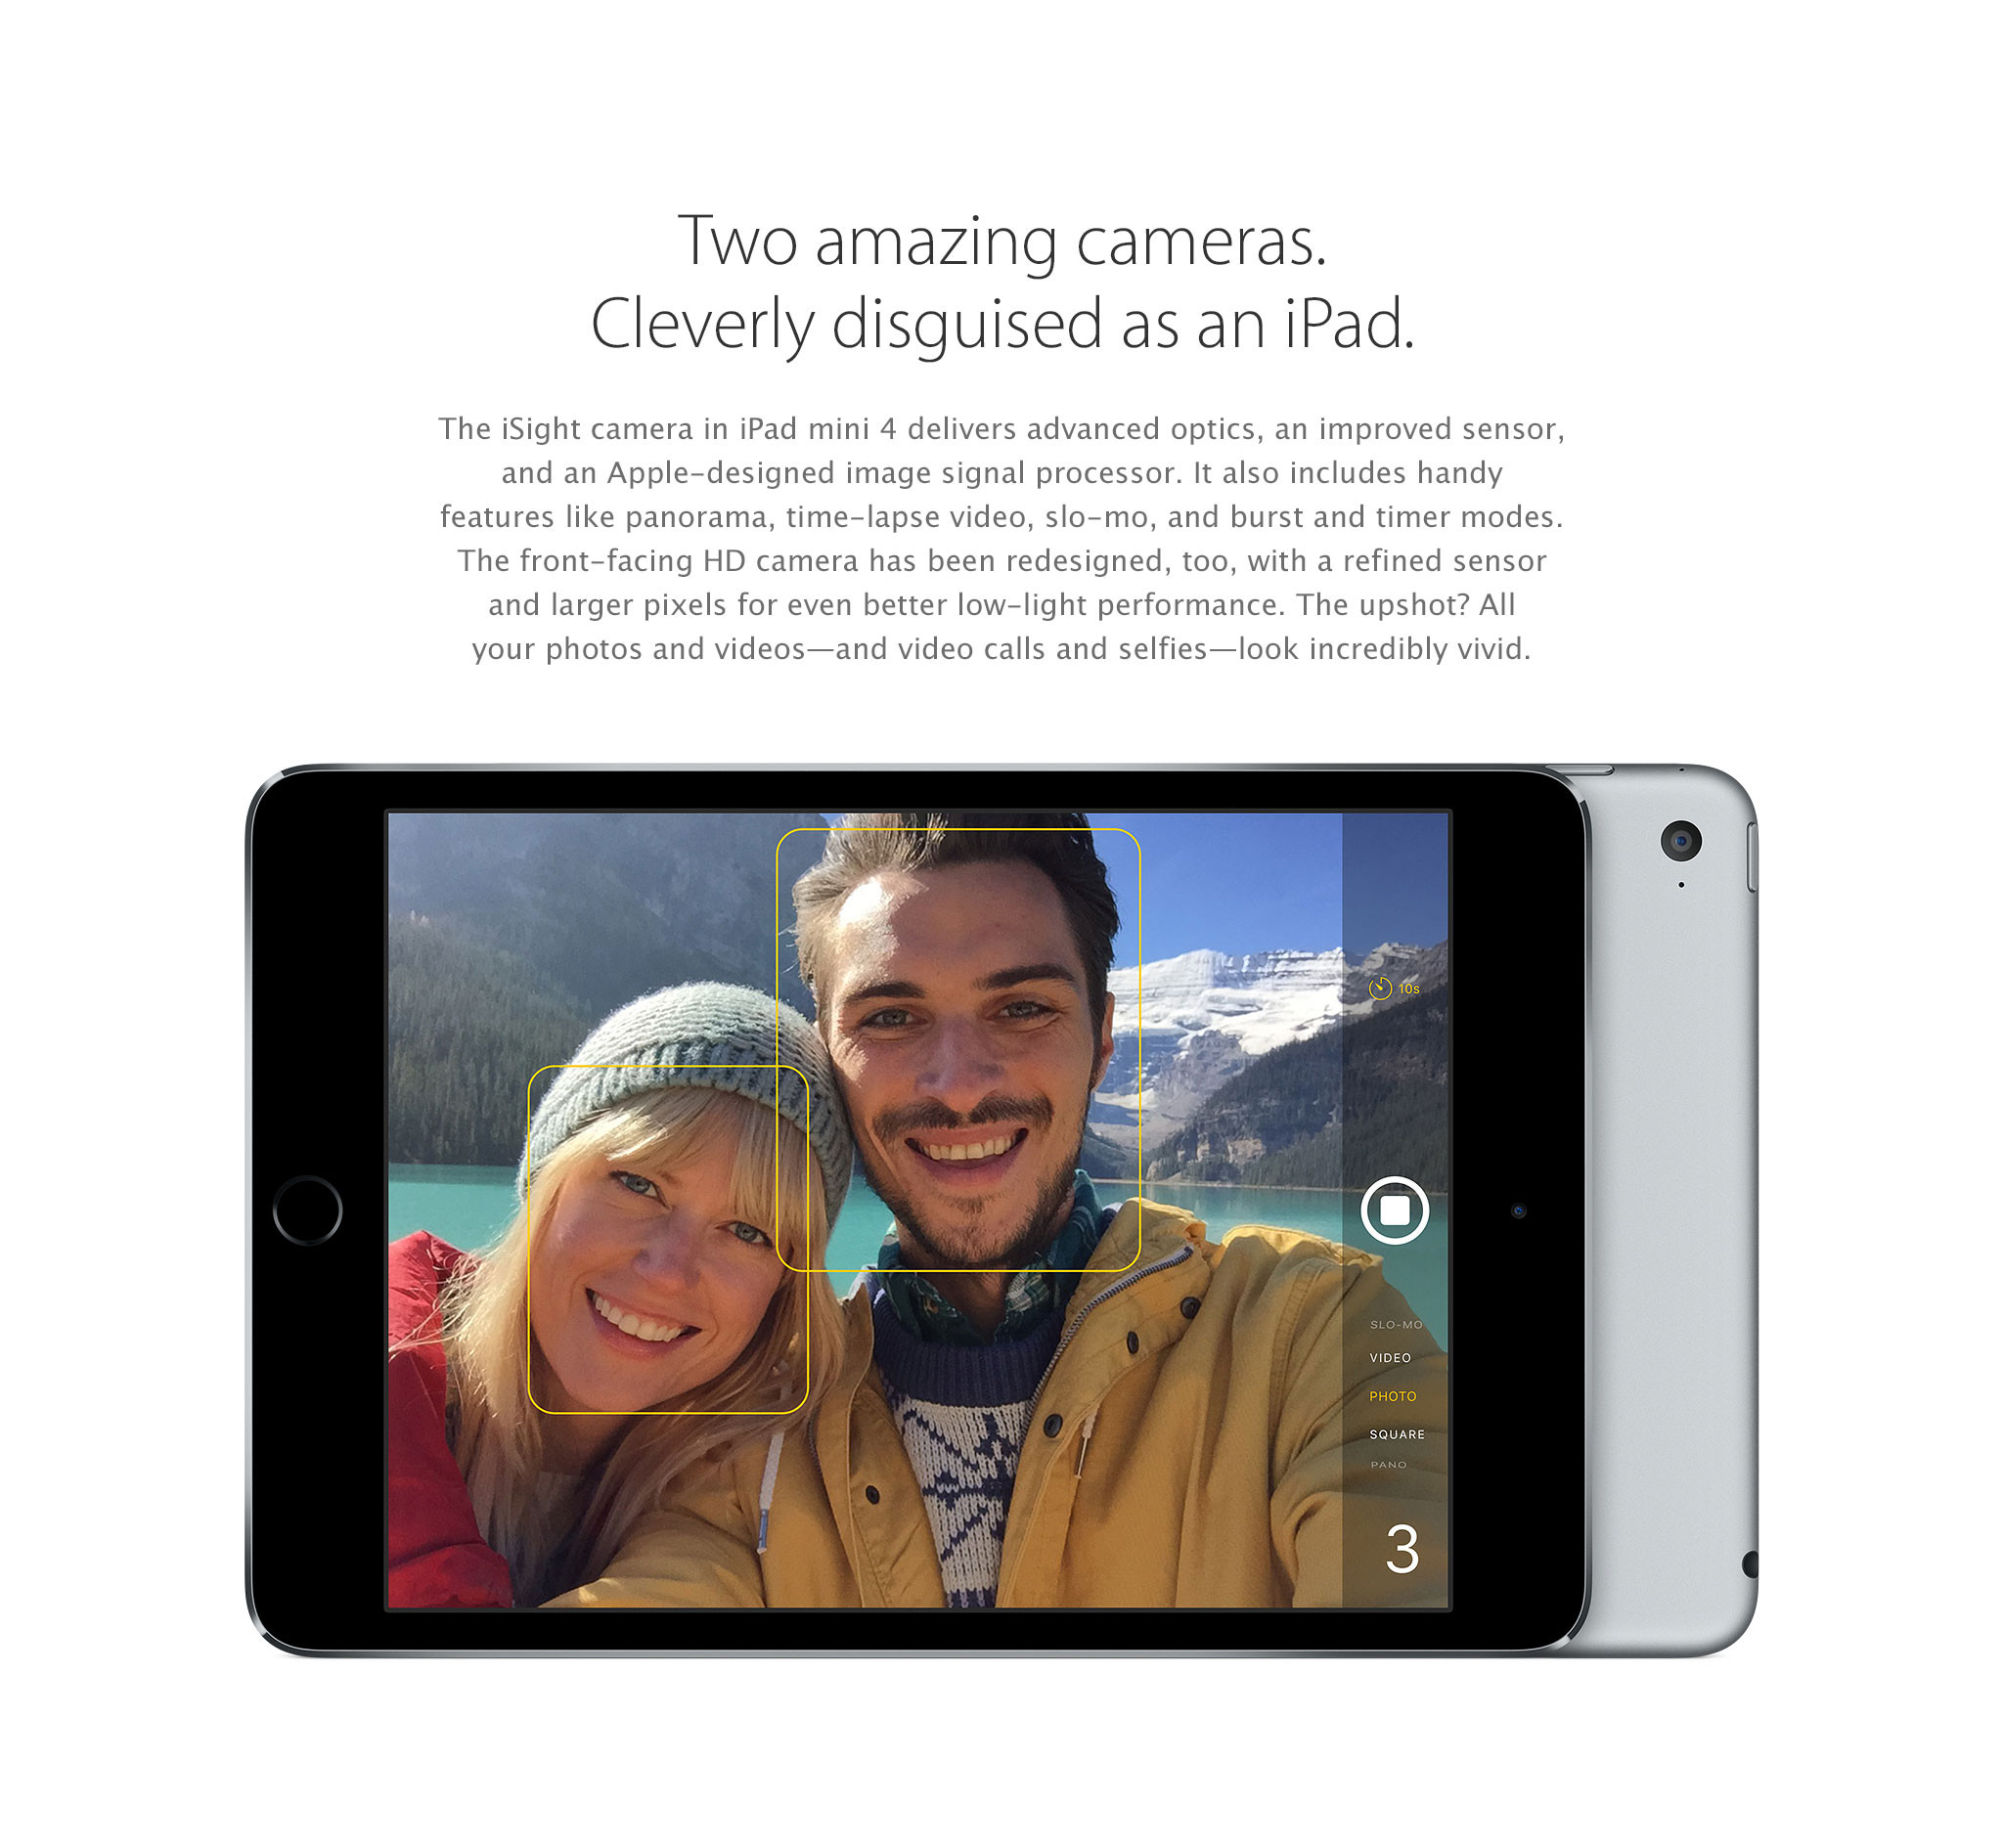 Two amazing cameras. Cleverly disguised as an iPad. The iSight camera in iPad mini 4 delivers advanced optics, an improved sensor, and an Apple-designed image signal processor. It also includes handy features like panorama, time-lapse video, slo-mo, and burst and timer modes. The front-facing HD camera has been redesigned, too, with a refined sensor and larger pixels for even better low-light performance. The upshot? All your photos and videos-and video calls and selfies-look incredibly vivid.